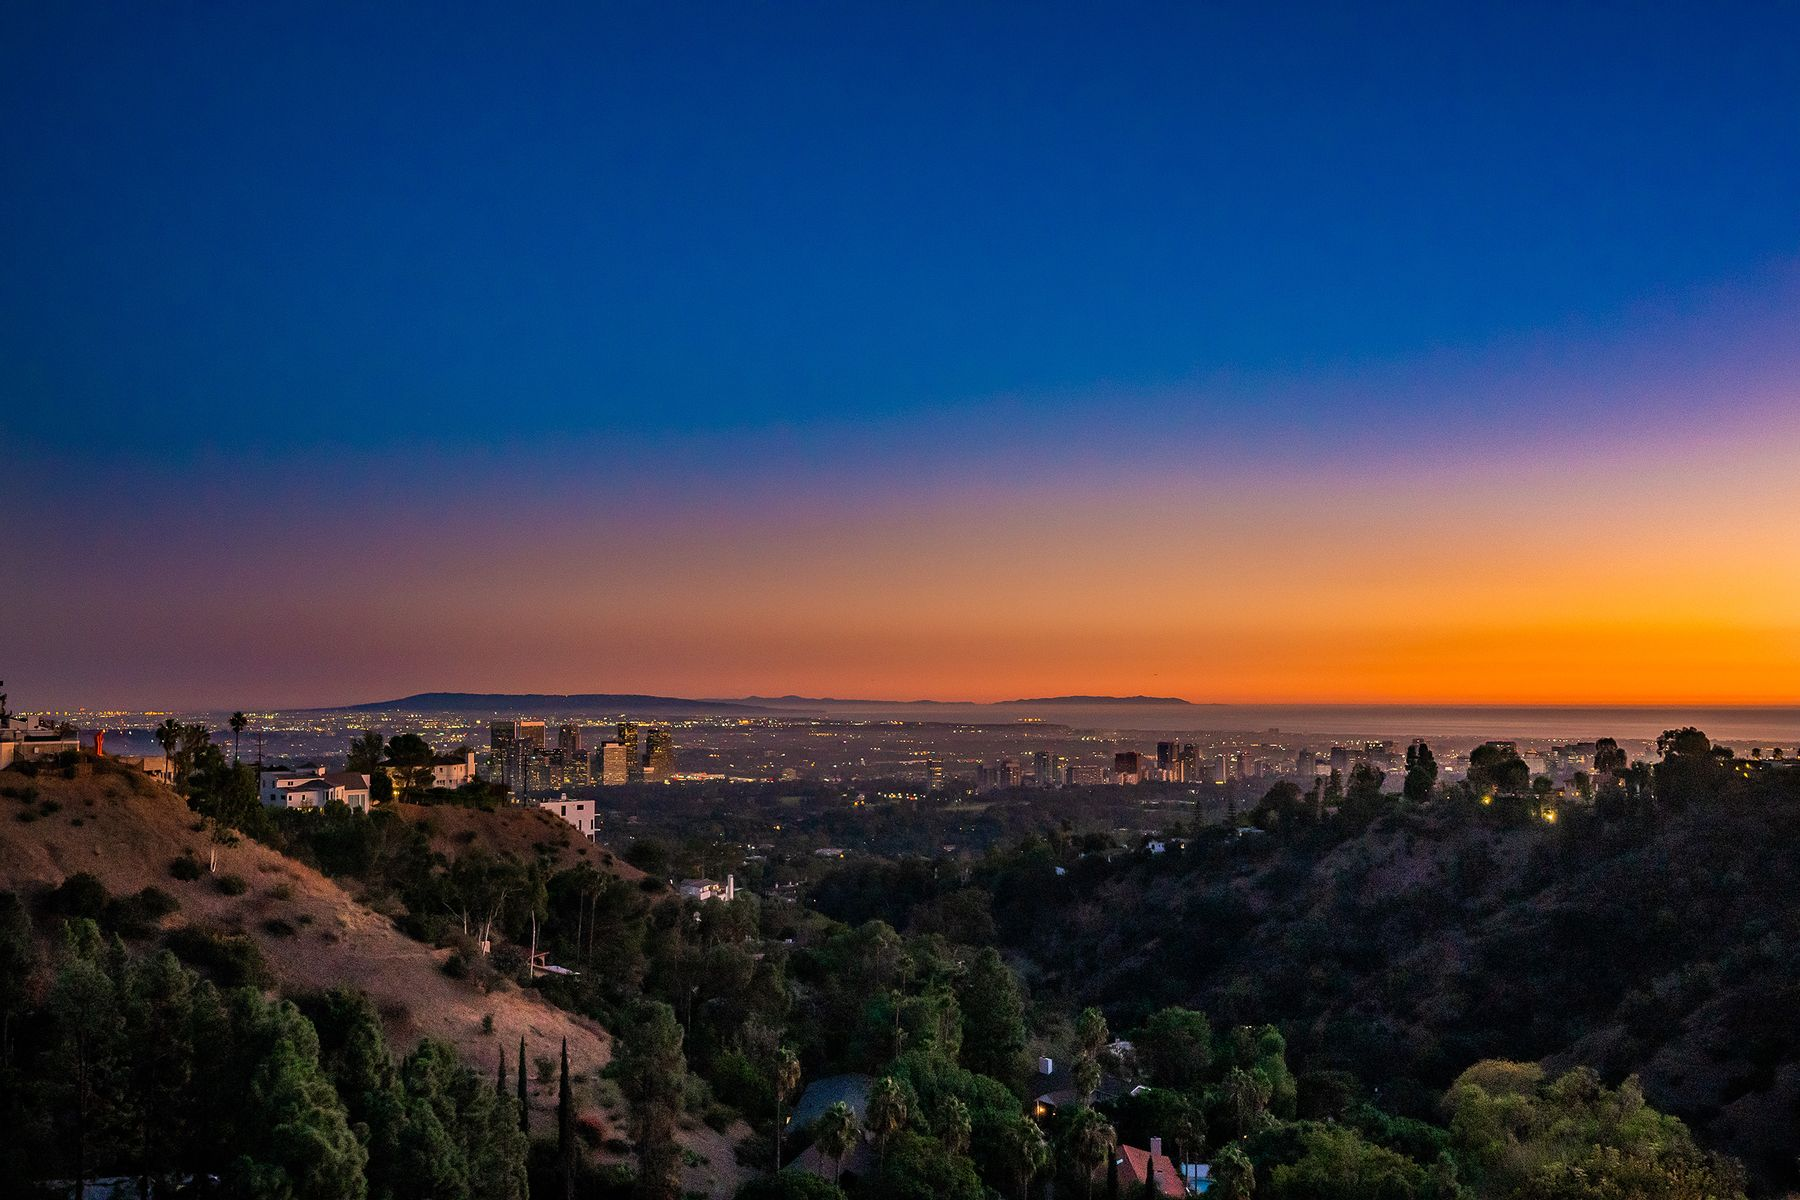 Land for Sale at 4 Acre Development Site in BHPO 1777 Summitridge Drive Los Angeles, California 90210 United States